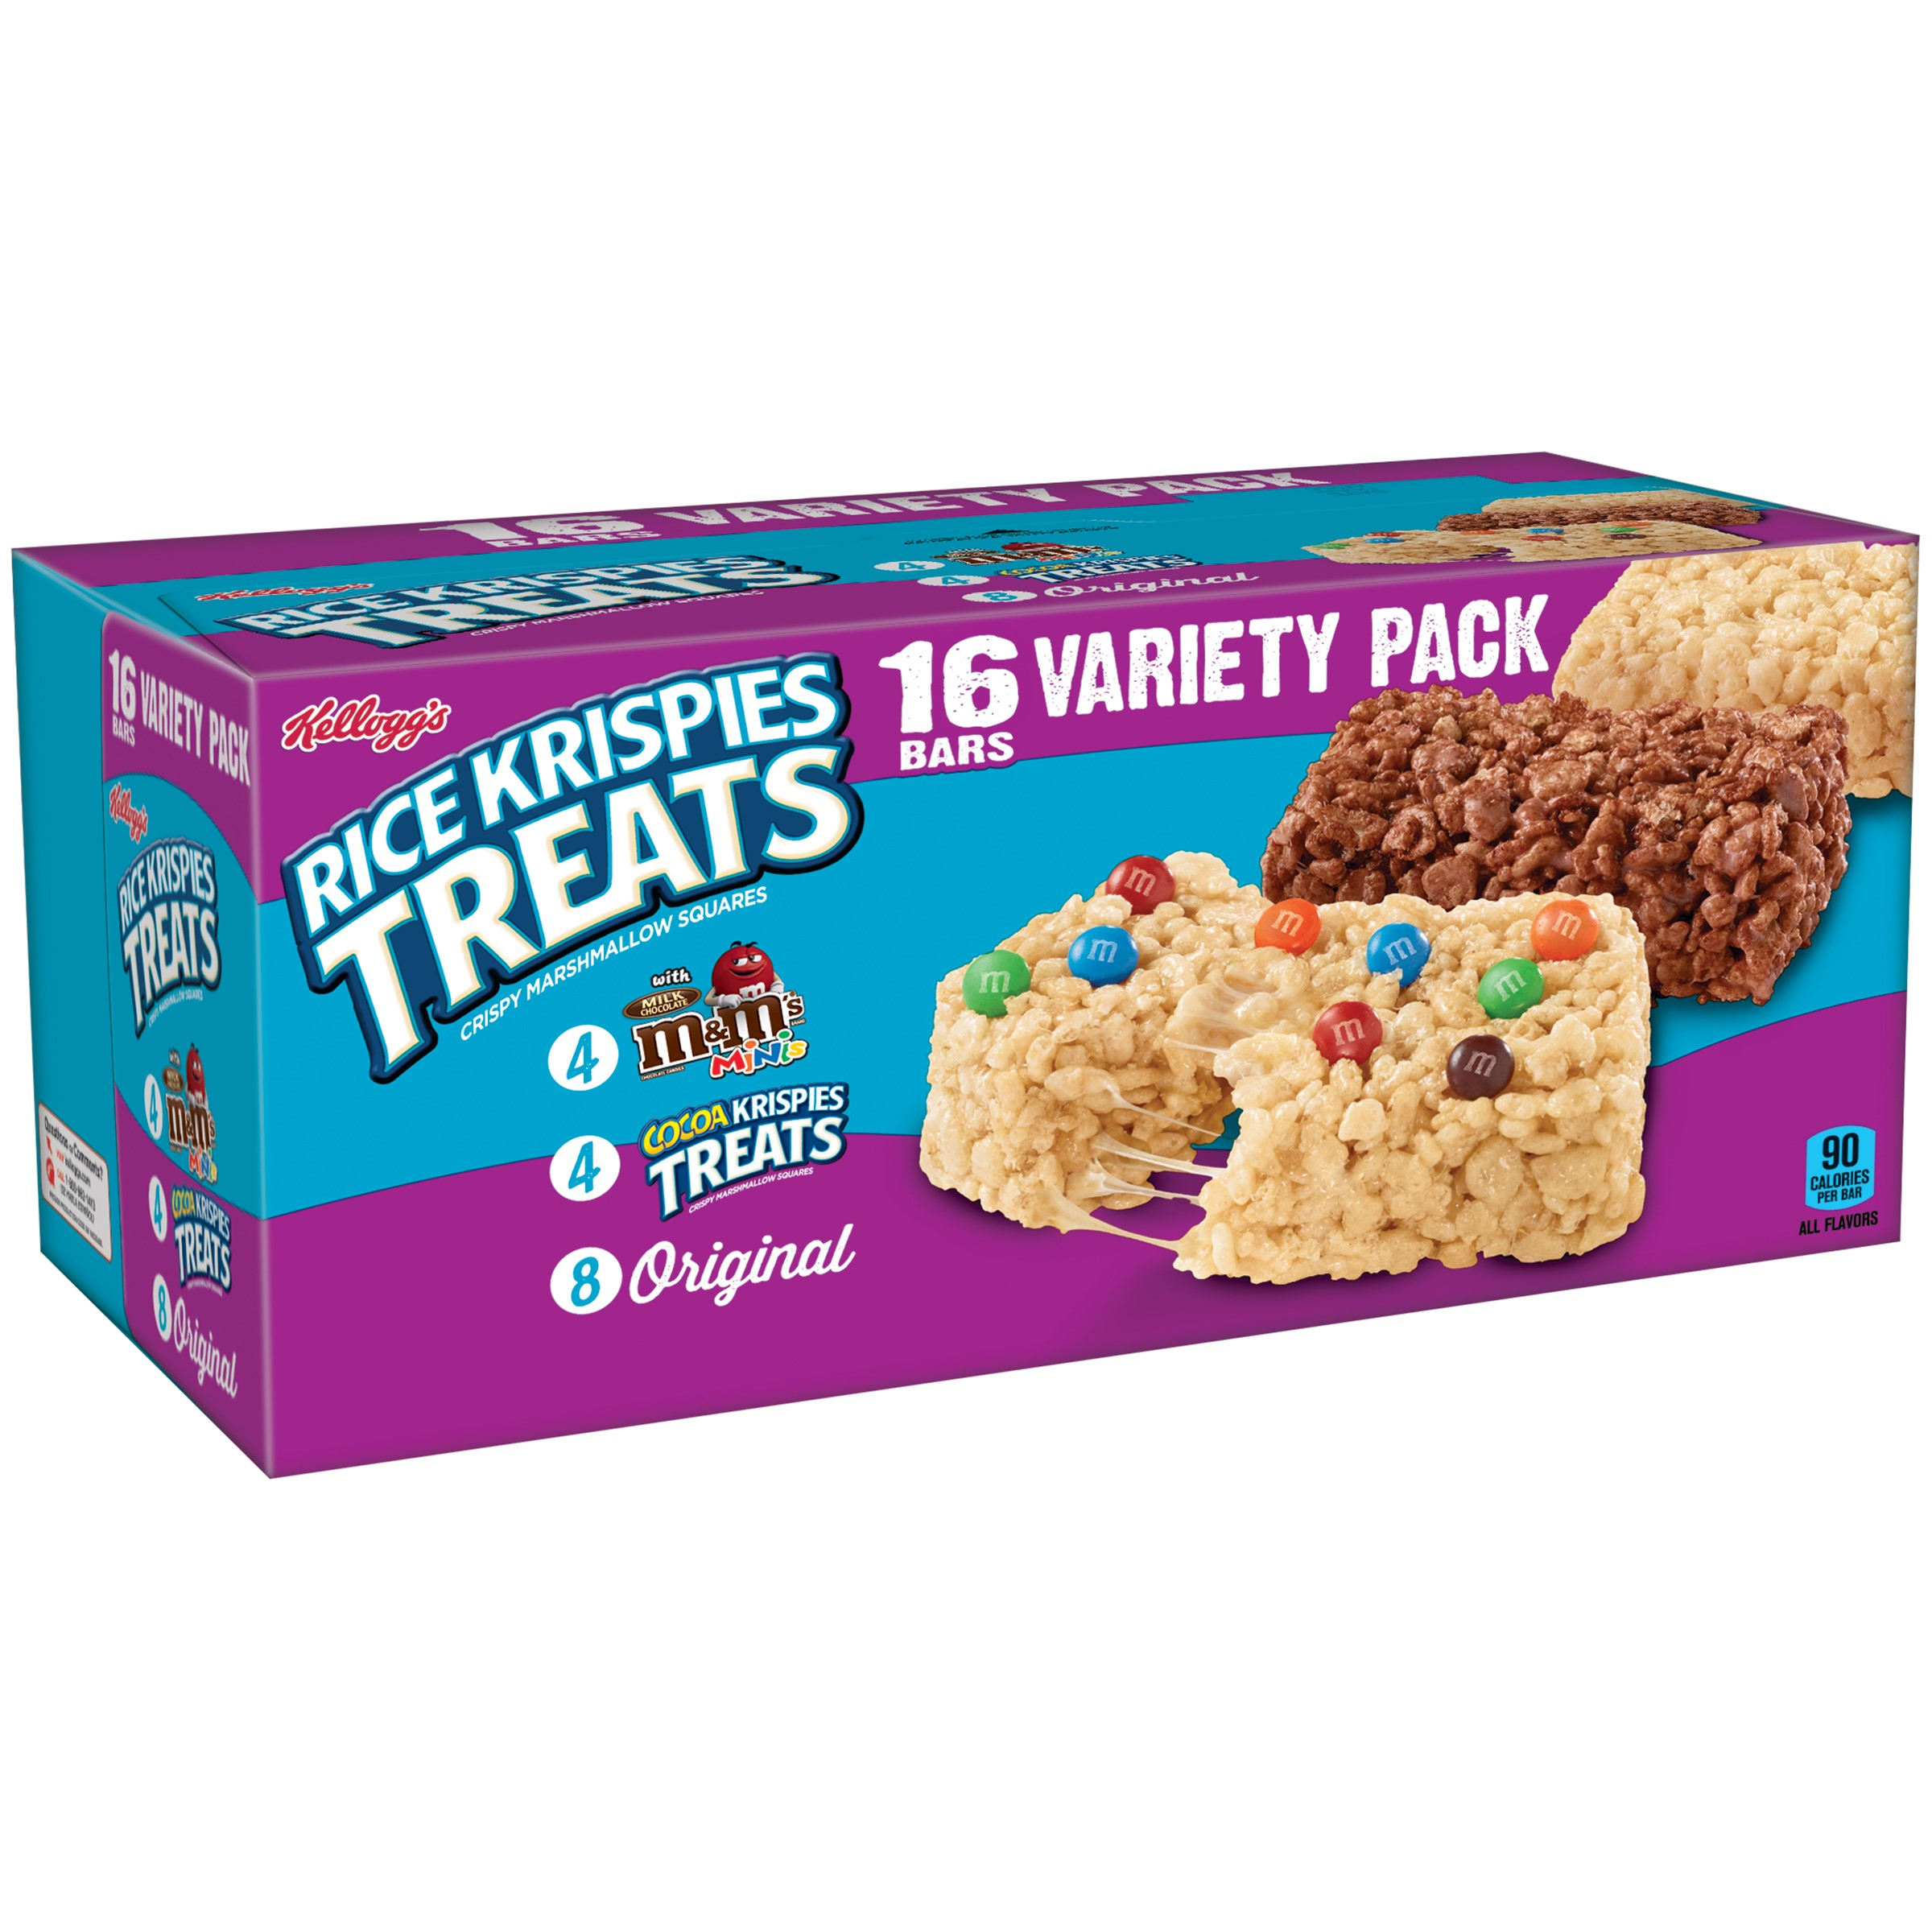 (6 Boxes) Kellogg's Rice Krispies Treats Variety Pack, 16 Ct-$0.20/Ct